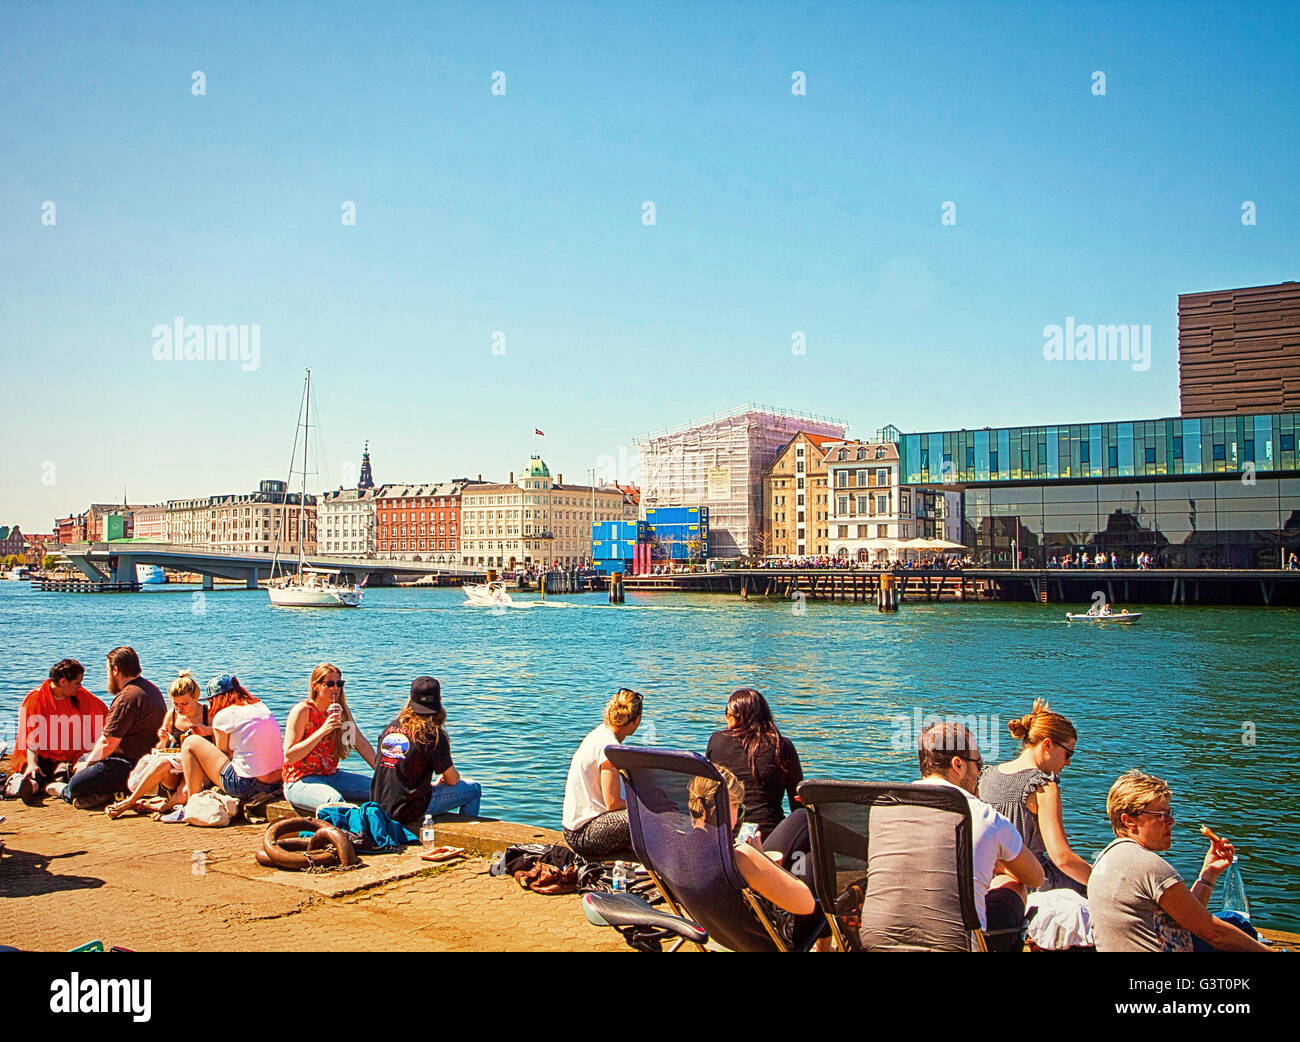 Copenhagen - people enjoy the beautiful weekend weather on the waterfront of Trangravsvej, eating outside the street - Stock Image